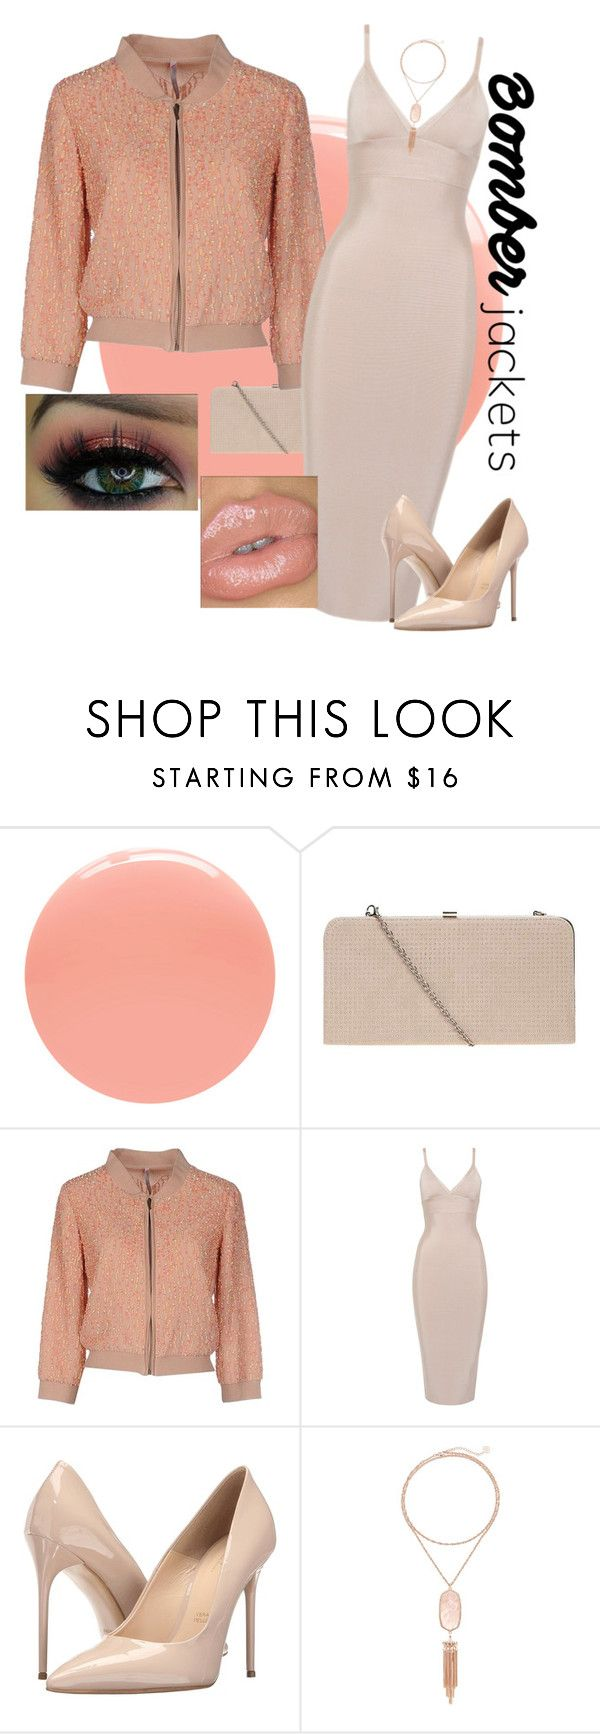 """""""hot summer nights"""" by nickiefinn ❤ liked on Polyvore featuring Eve Snow, Dorothy Perkins, SCEE, Massimo Matteo, Kendra Scott and bomberjackets"""